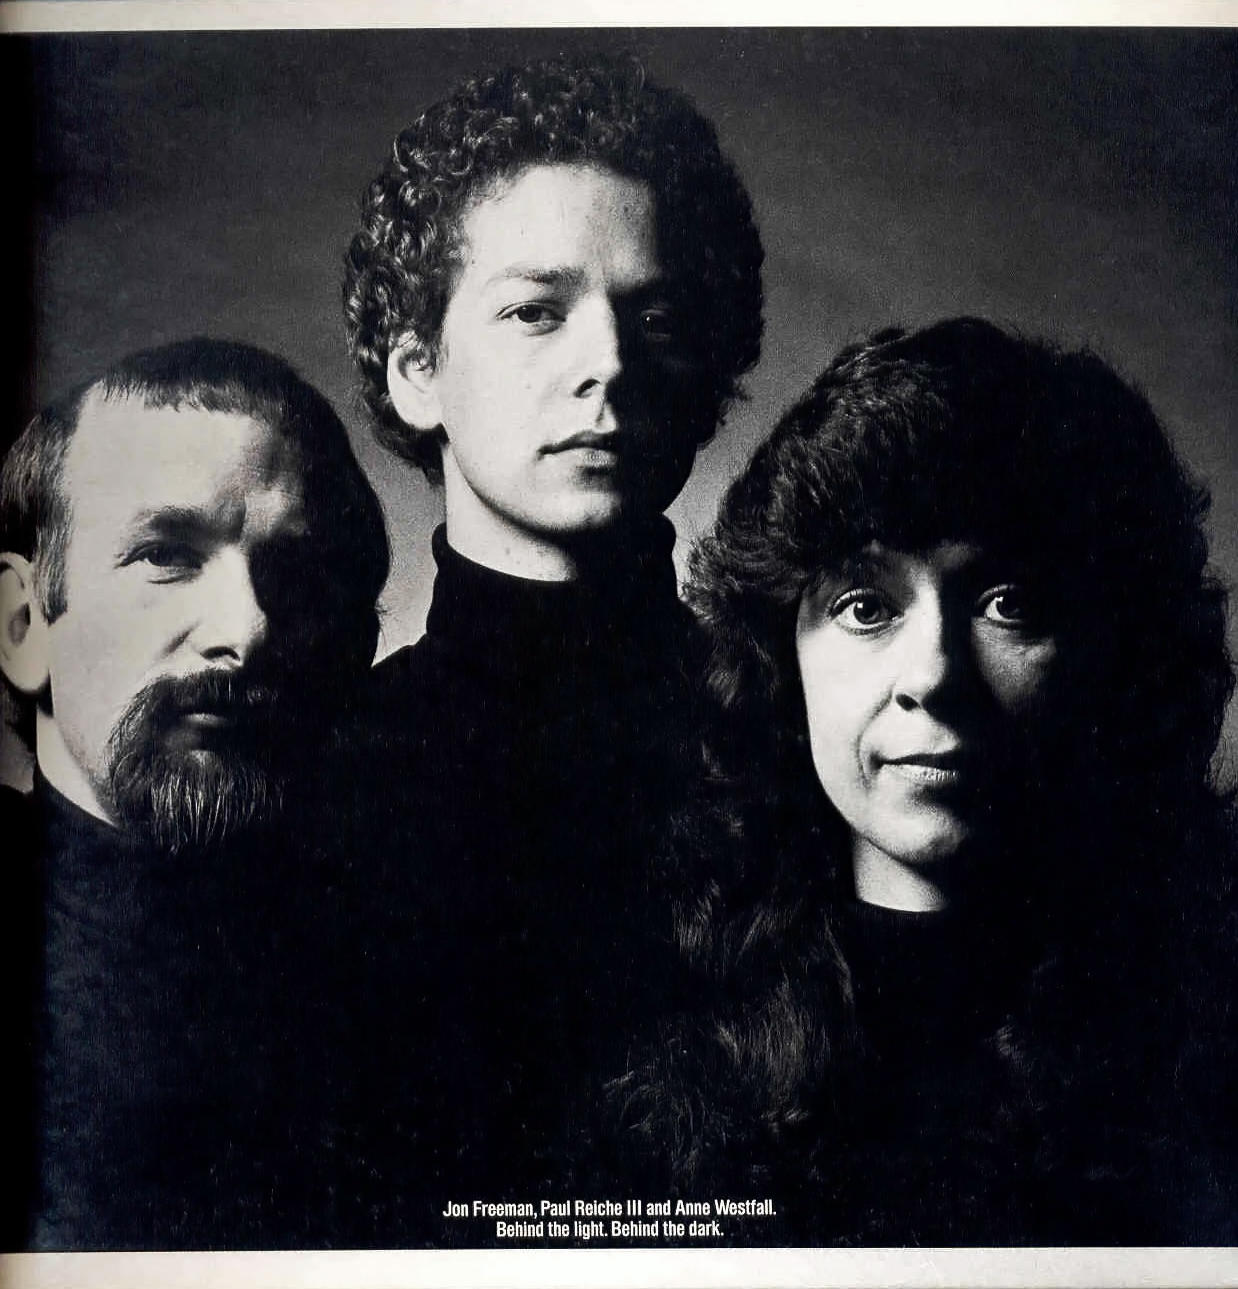 Image of Jon Freeman, Paul Reiche III and Anne Westfall, creators of Archon for Electronic Arts 1983